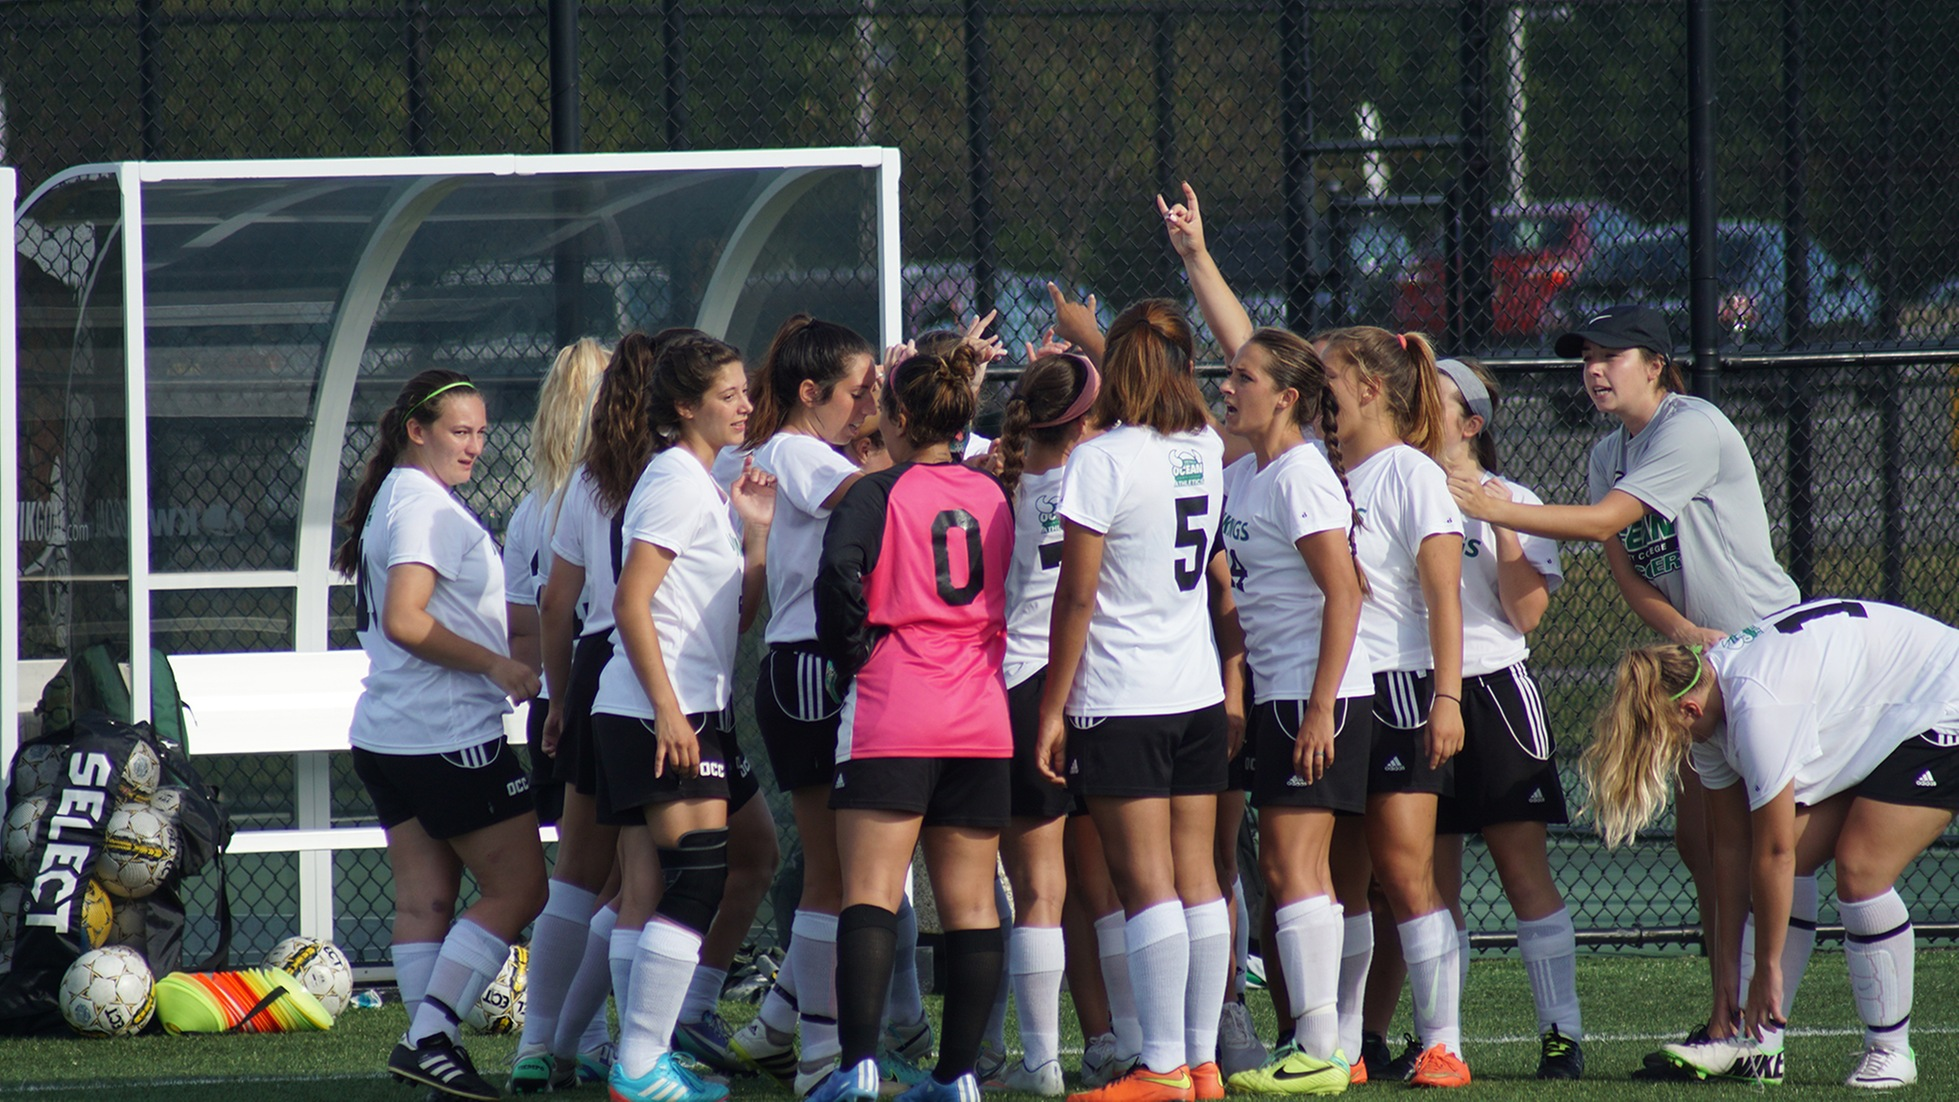 Vikings Fall to Brookdale CC, 3-2 in 1st Round of Region XIX Playoffs